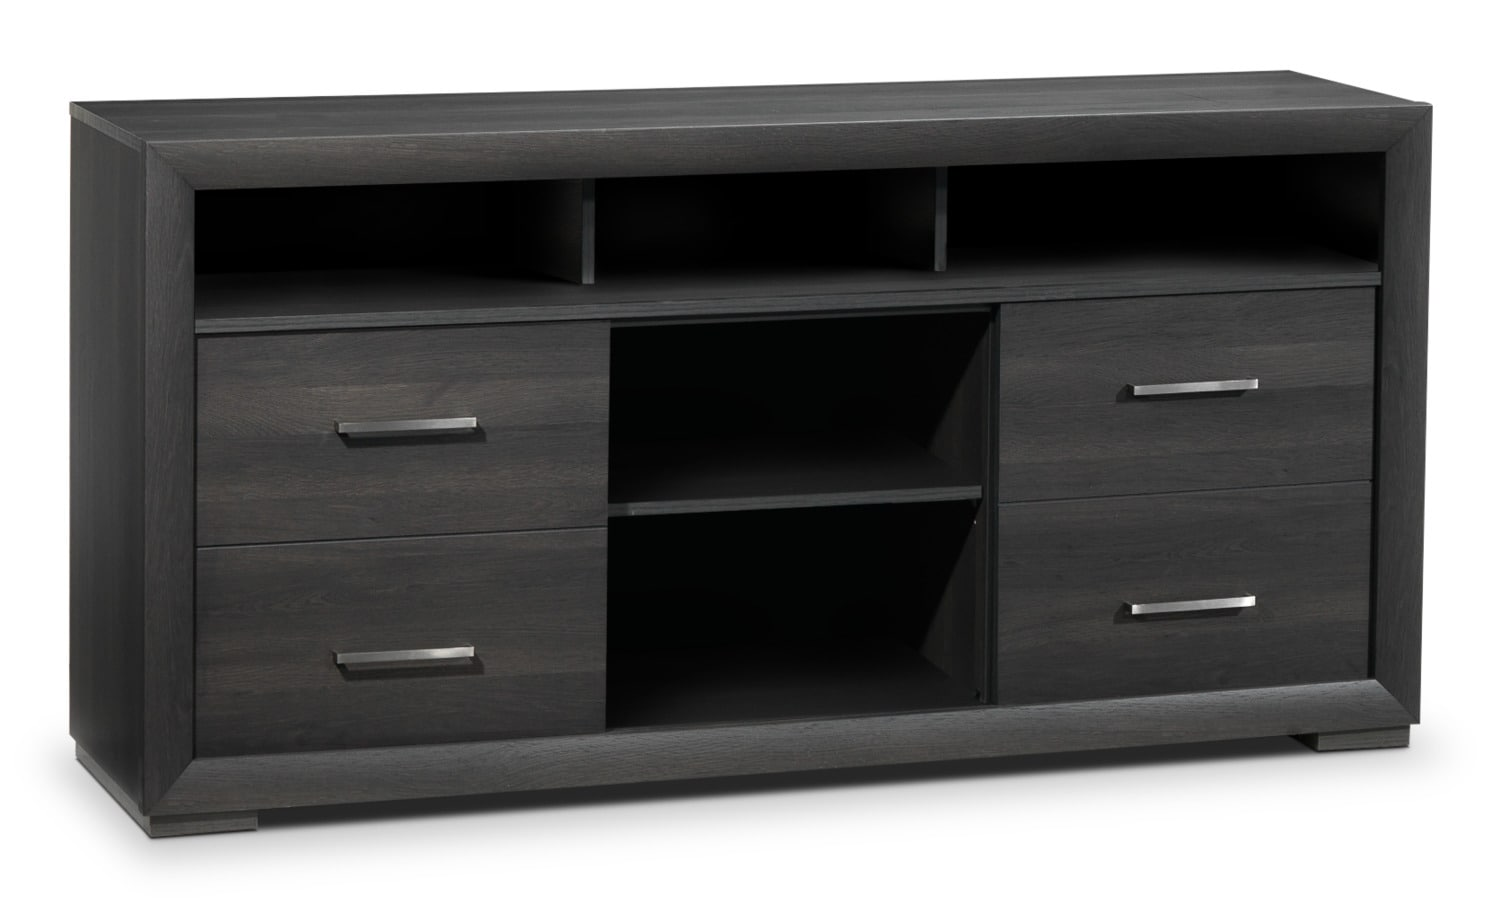 Iver TV Stand - Grey